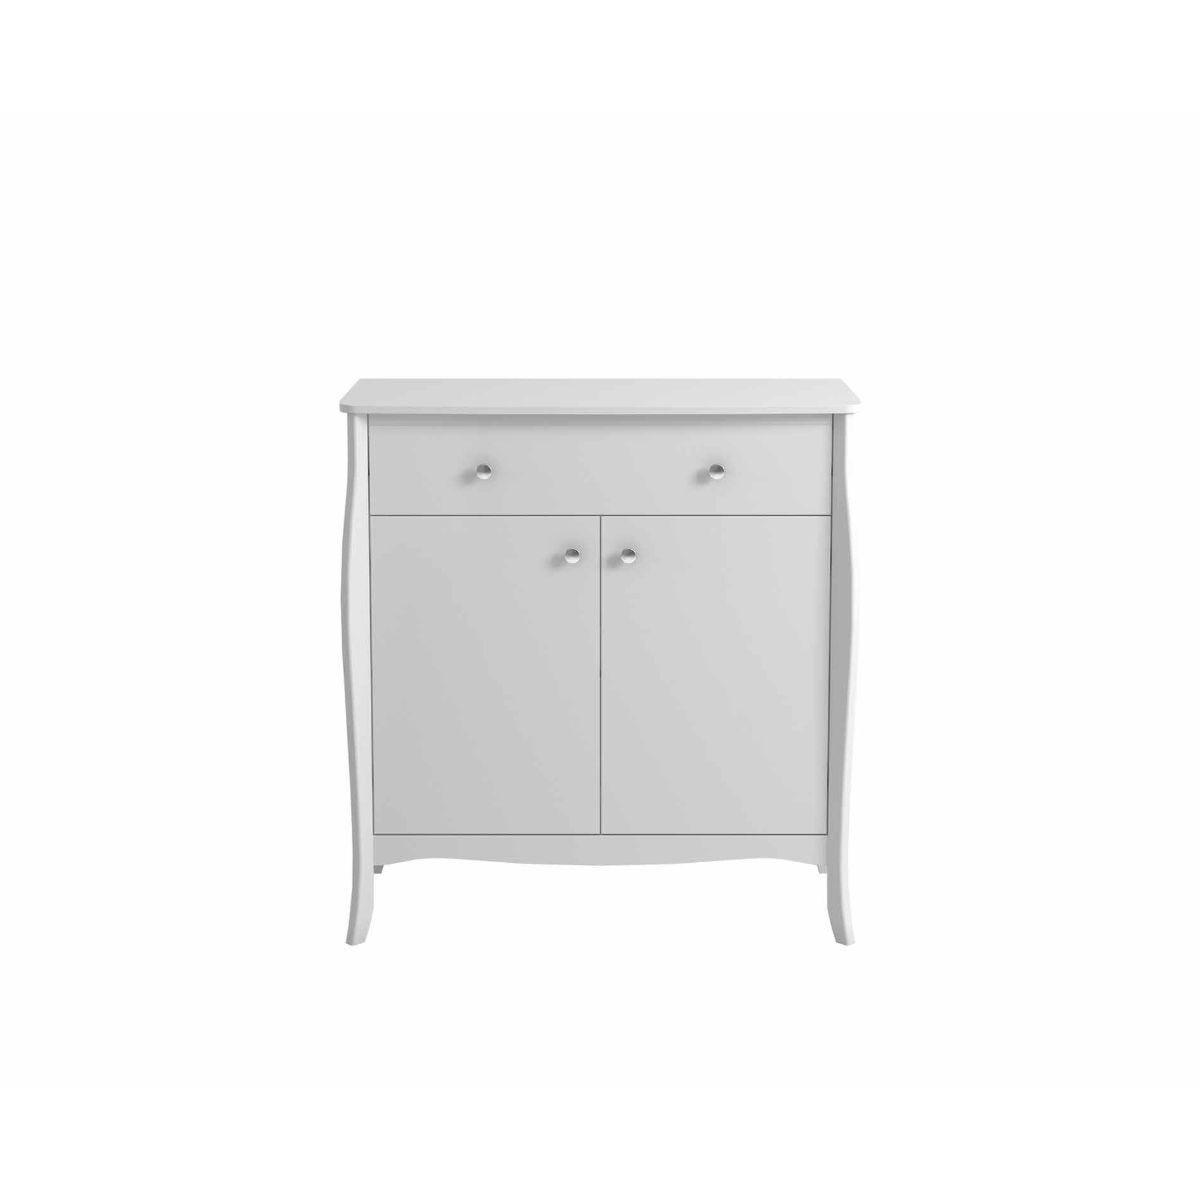 Steens Baroque Sideboard Small